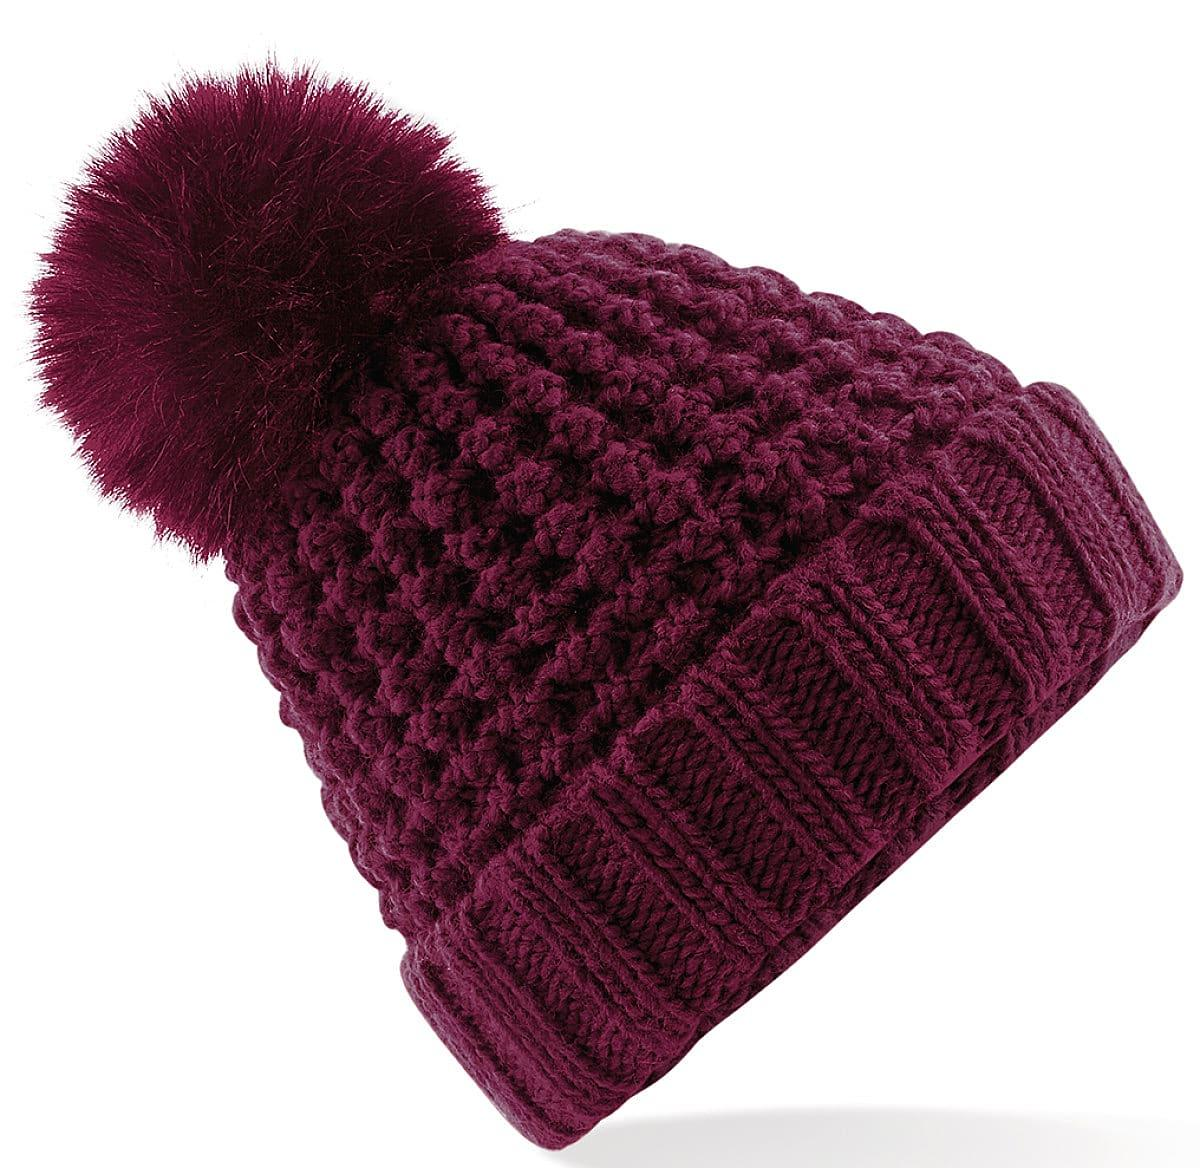 Beechfield Popcorn Fur Pop Pom Beanie Hat in Burgundy (Product Code: B415)